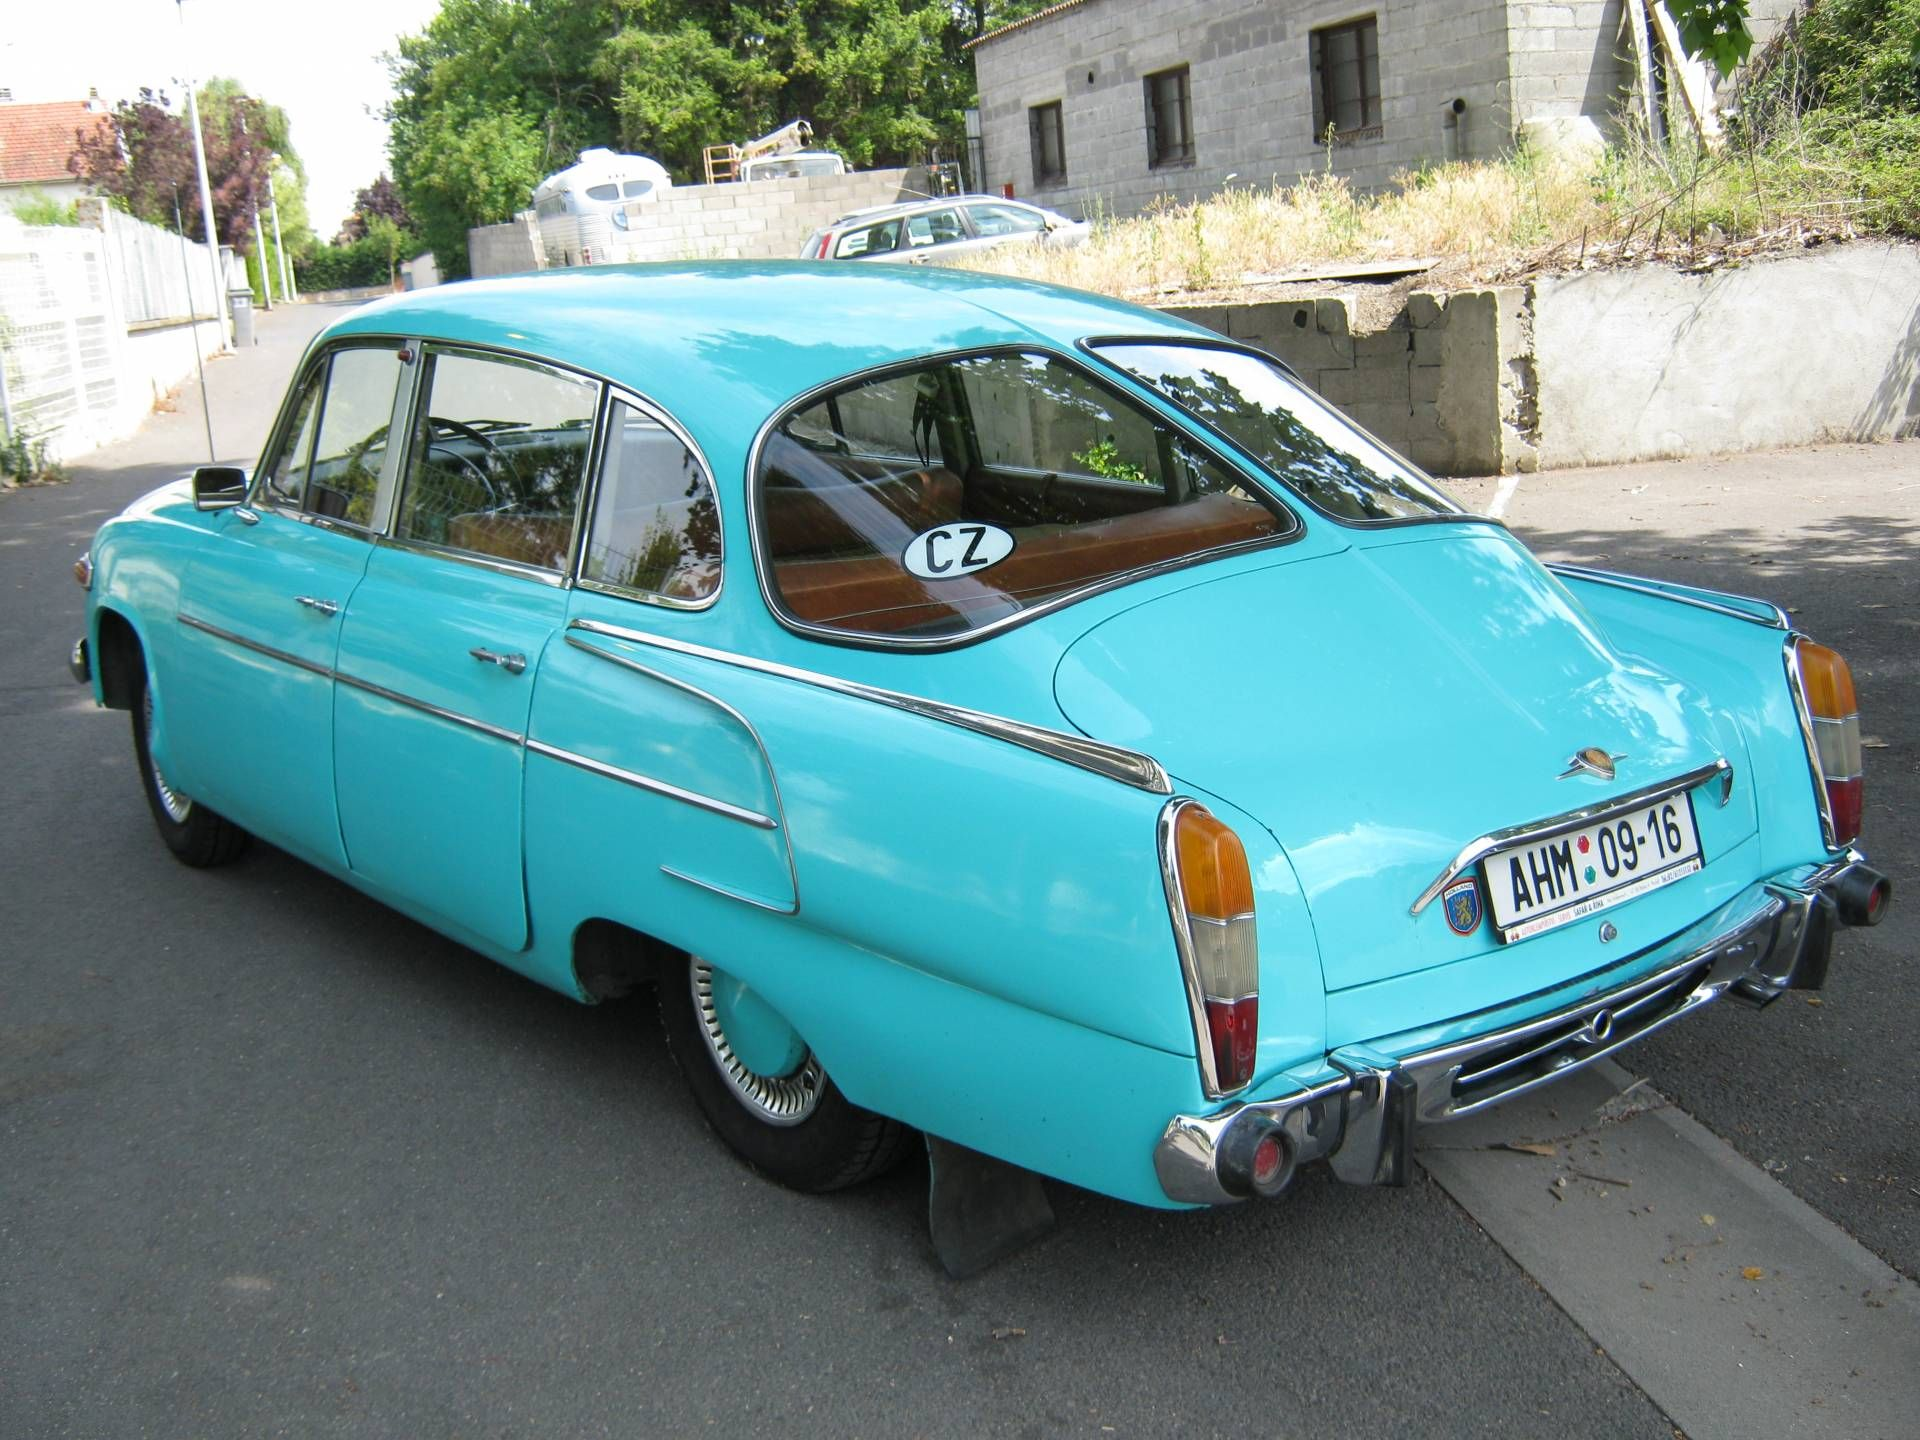 Tatra 603 Tatraplan (1957) | love to own | Pinterest | Cars ...